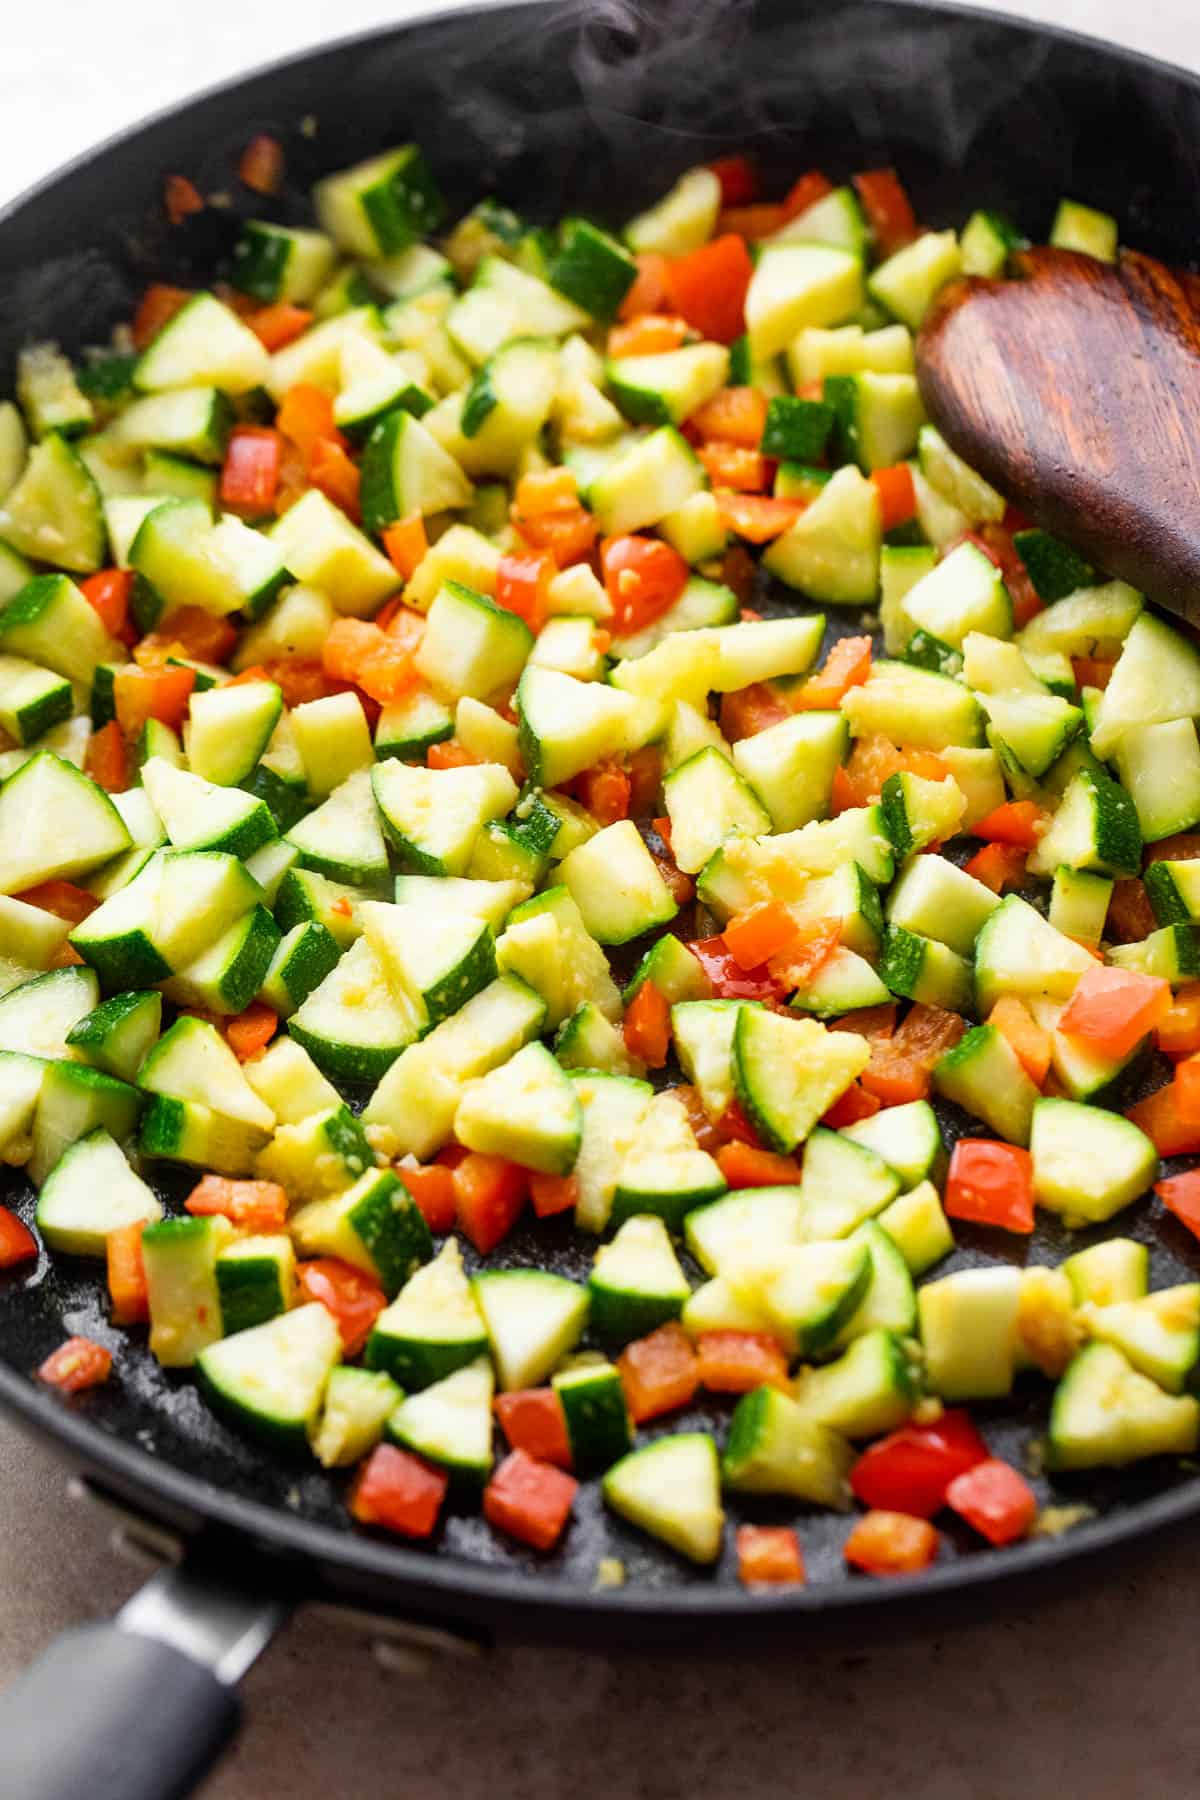 diced zucchini and diced red bell pepper cooking in a black skillet